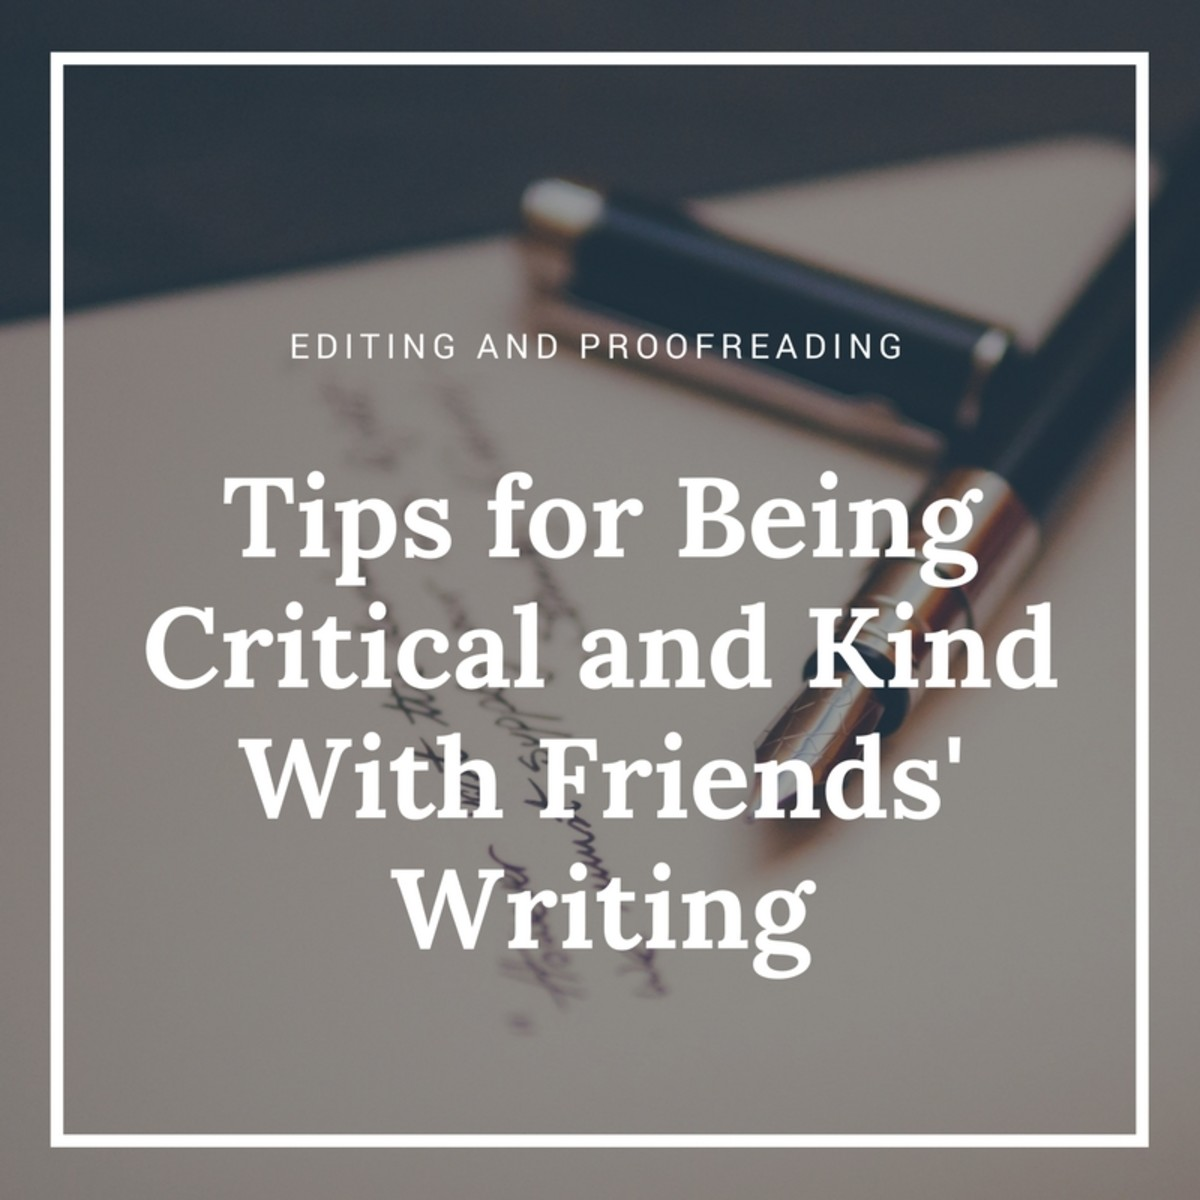 Editing and Proofreading Tips for Being Critical and Kind With Friends' Writing